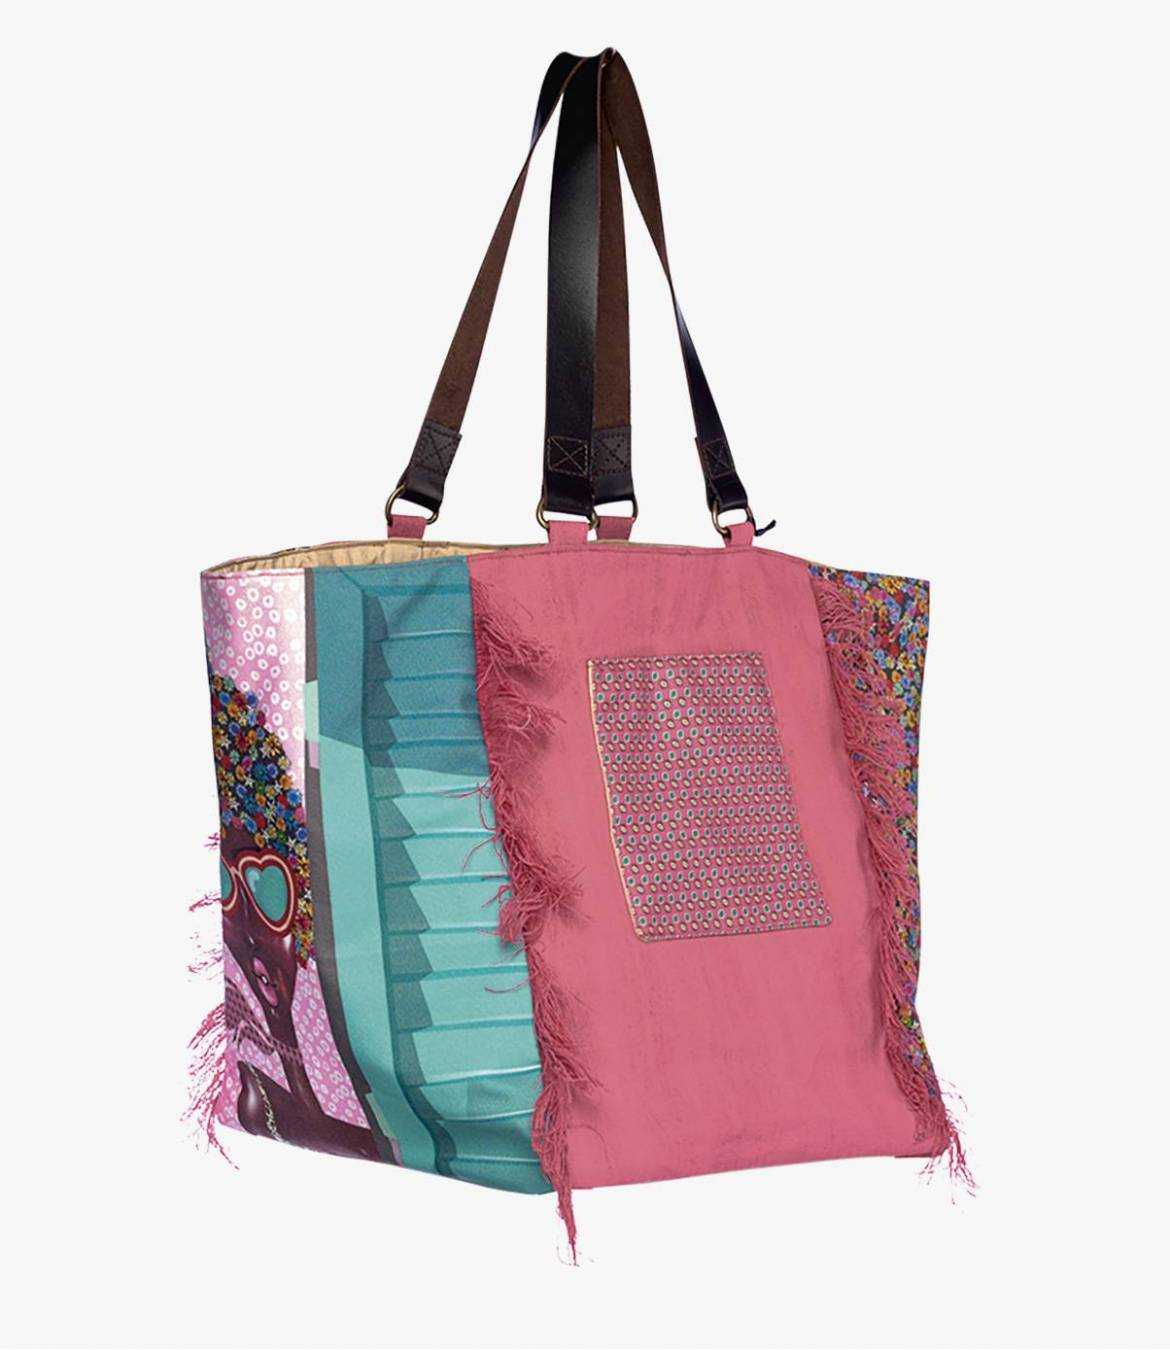 TOTE JODIE Polyester Bag, Cotton, Women's Leather 30 x 30 x 35 cm Storiatipic - 1